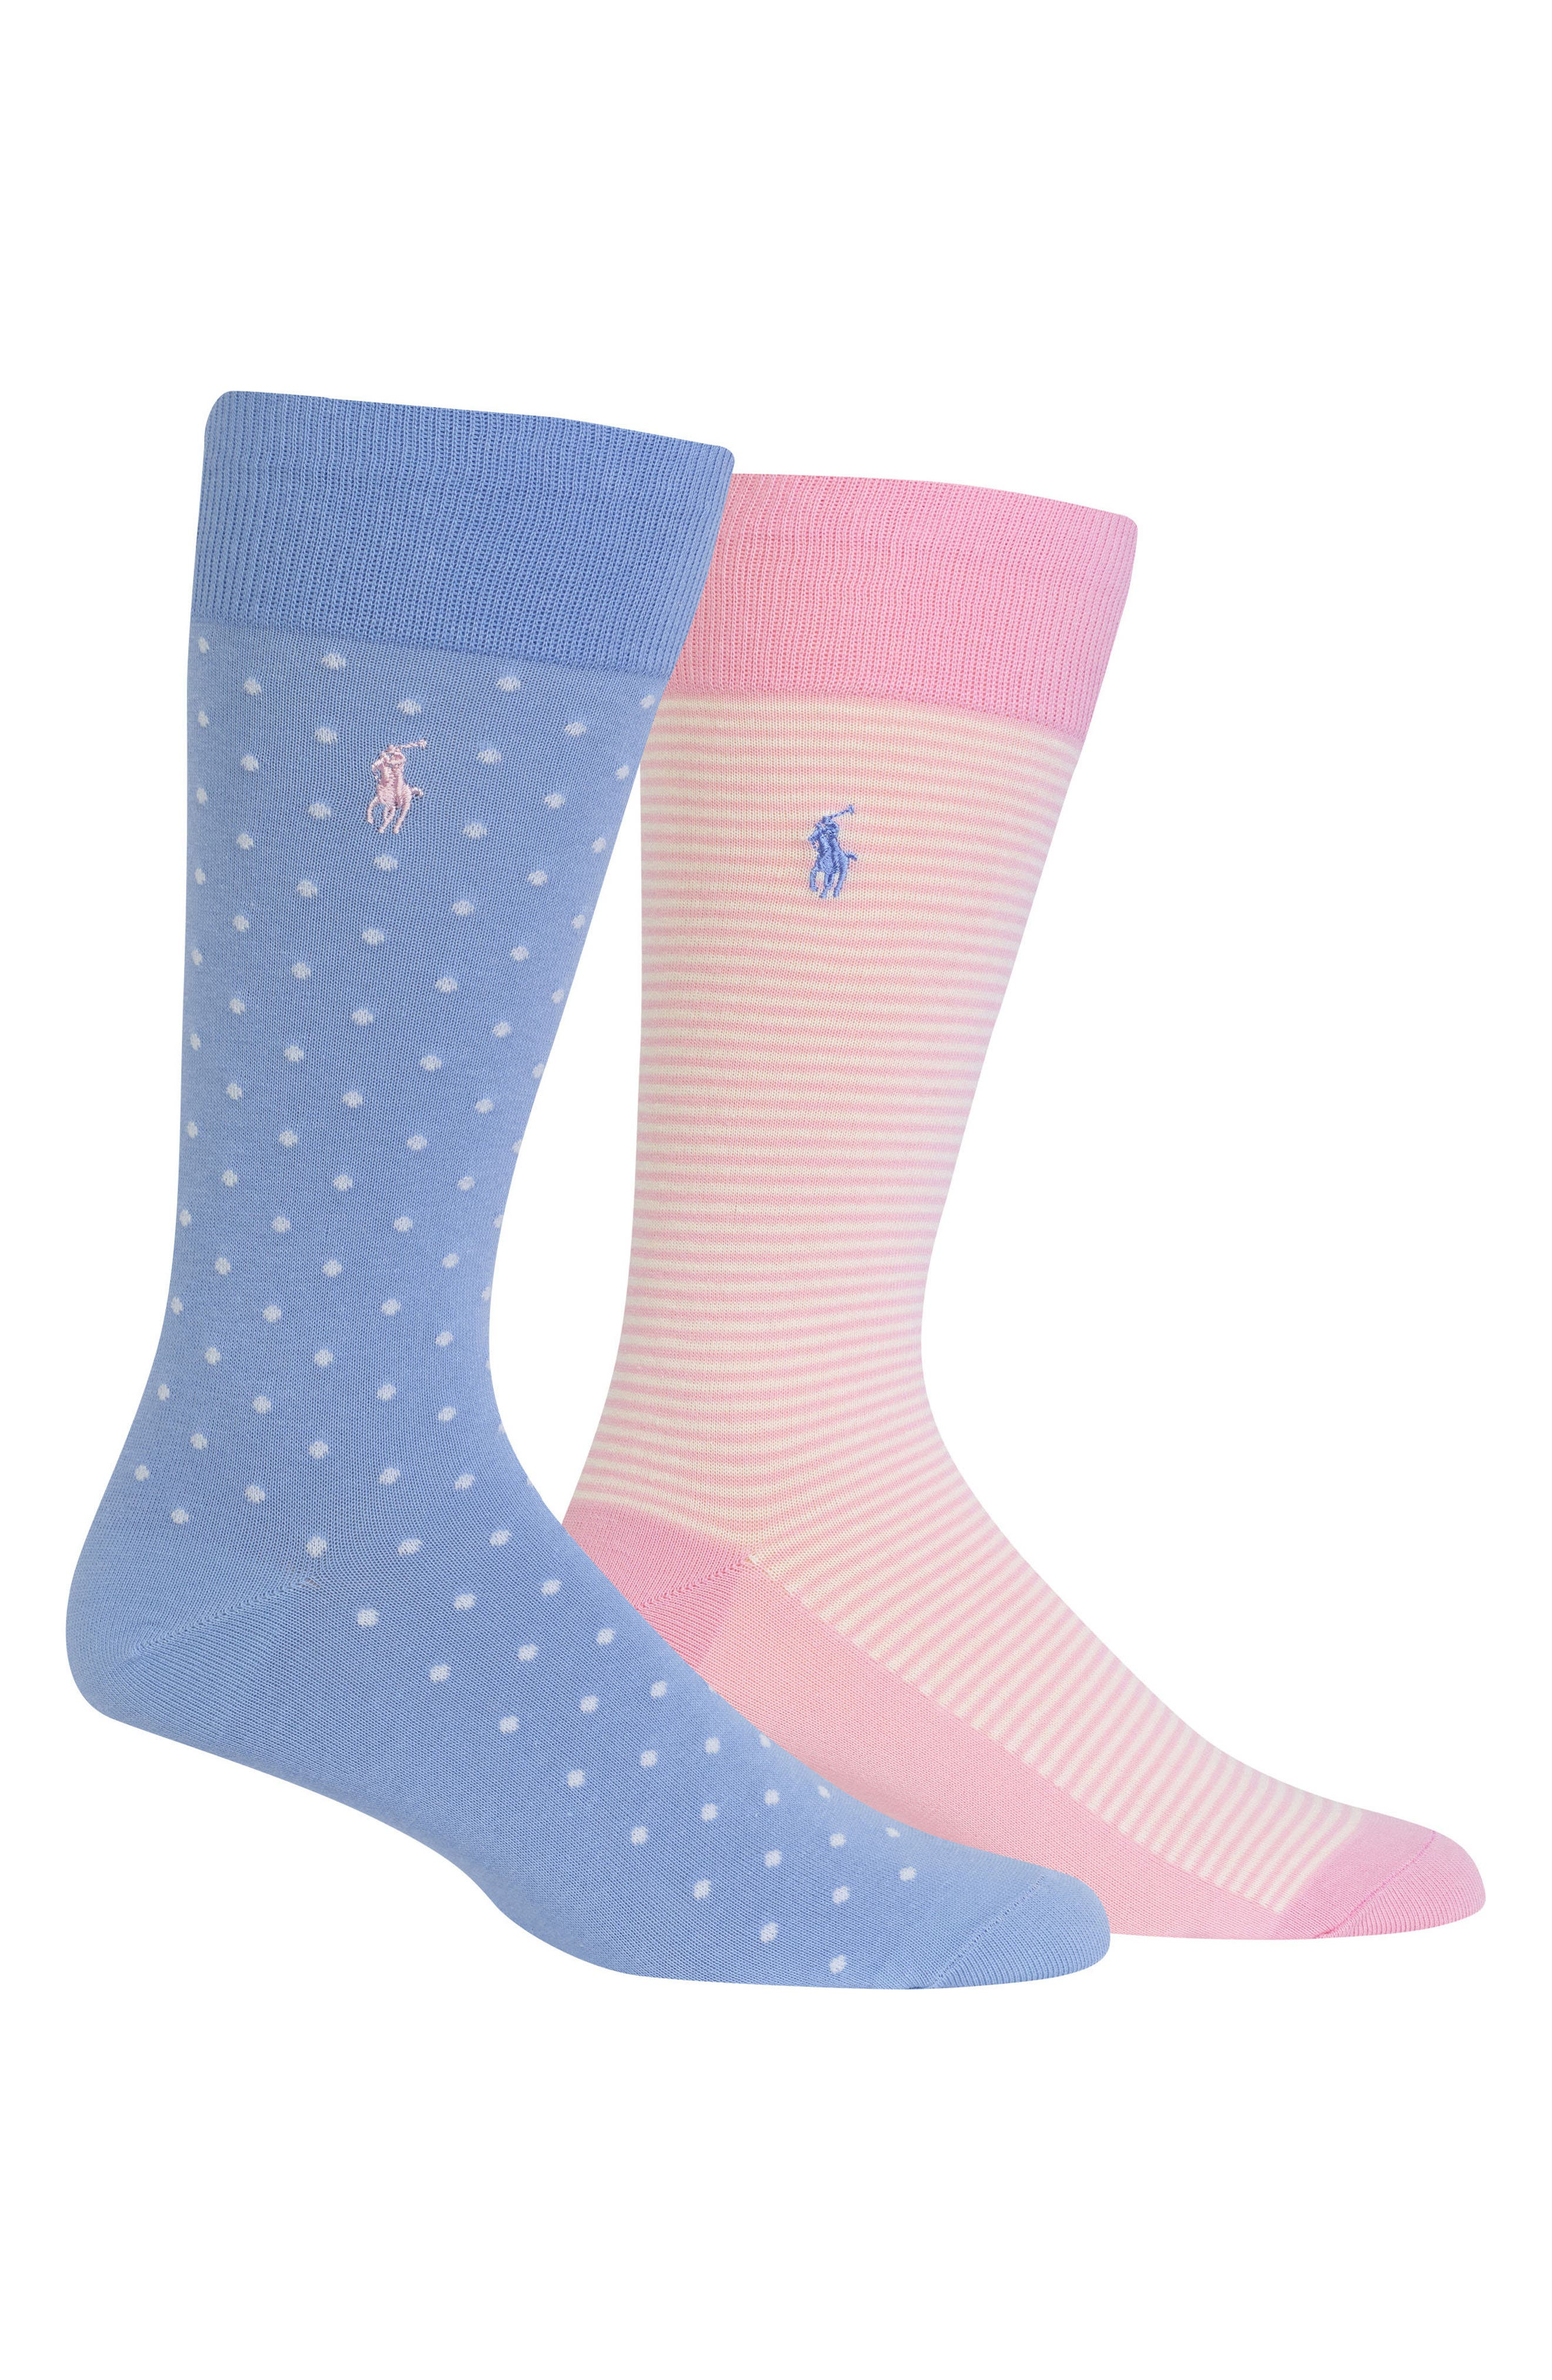 2-Pack Socks,                         Main,                         color, 468